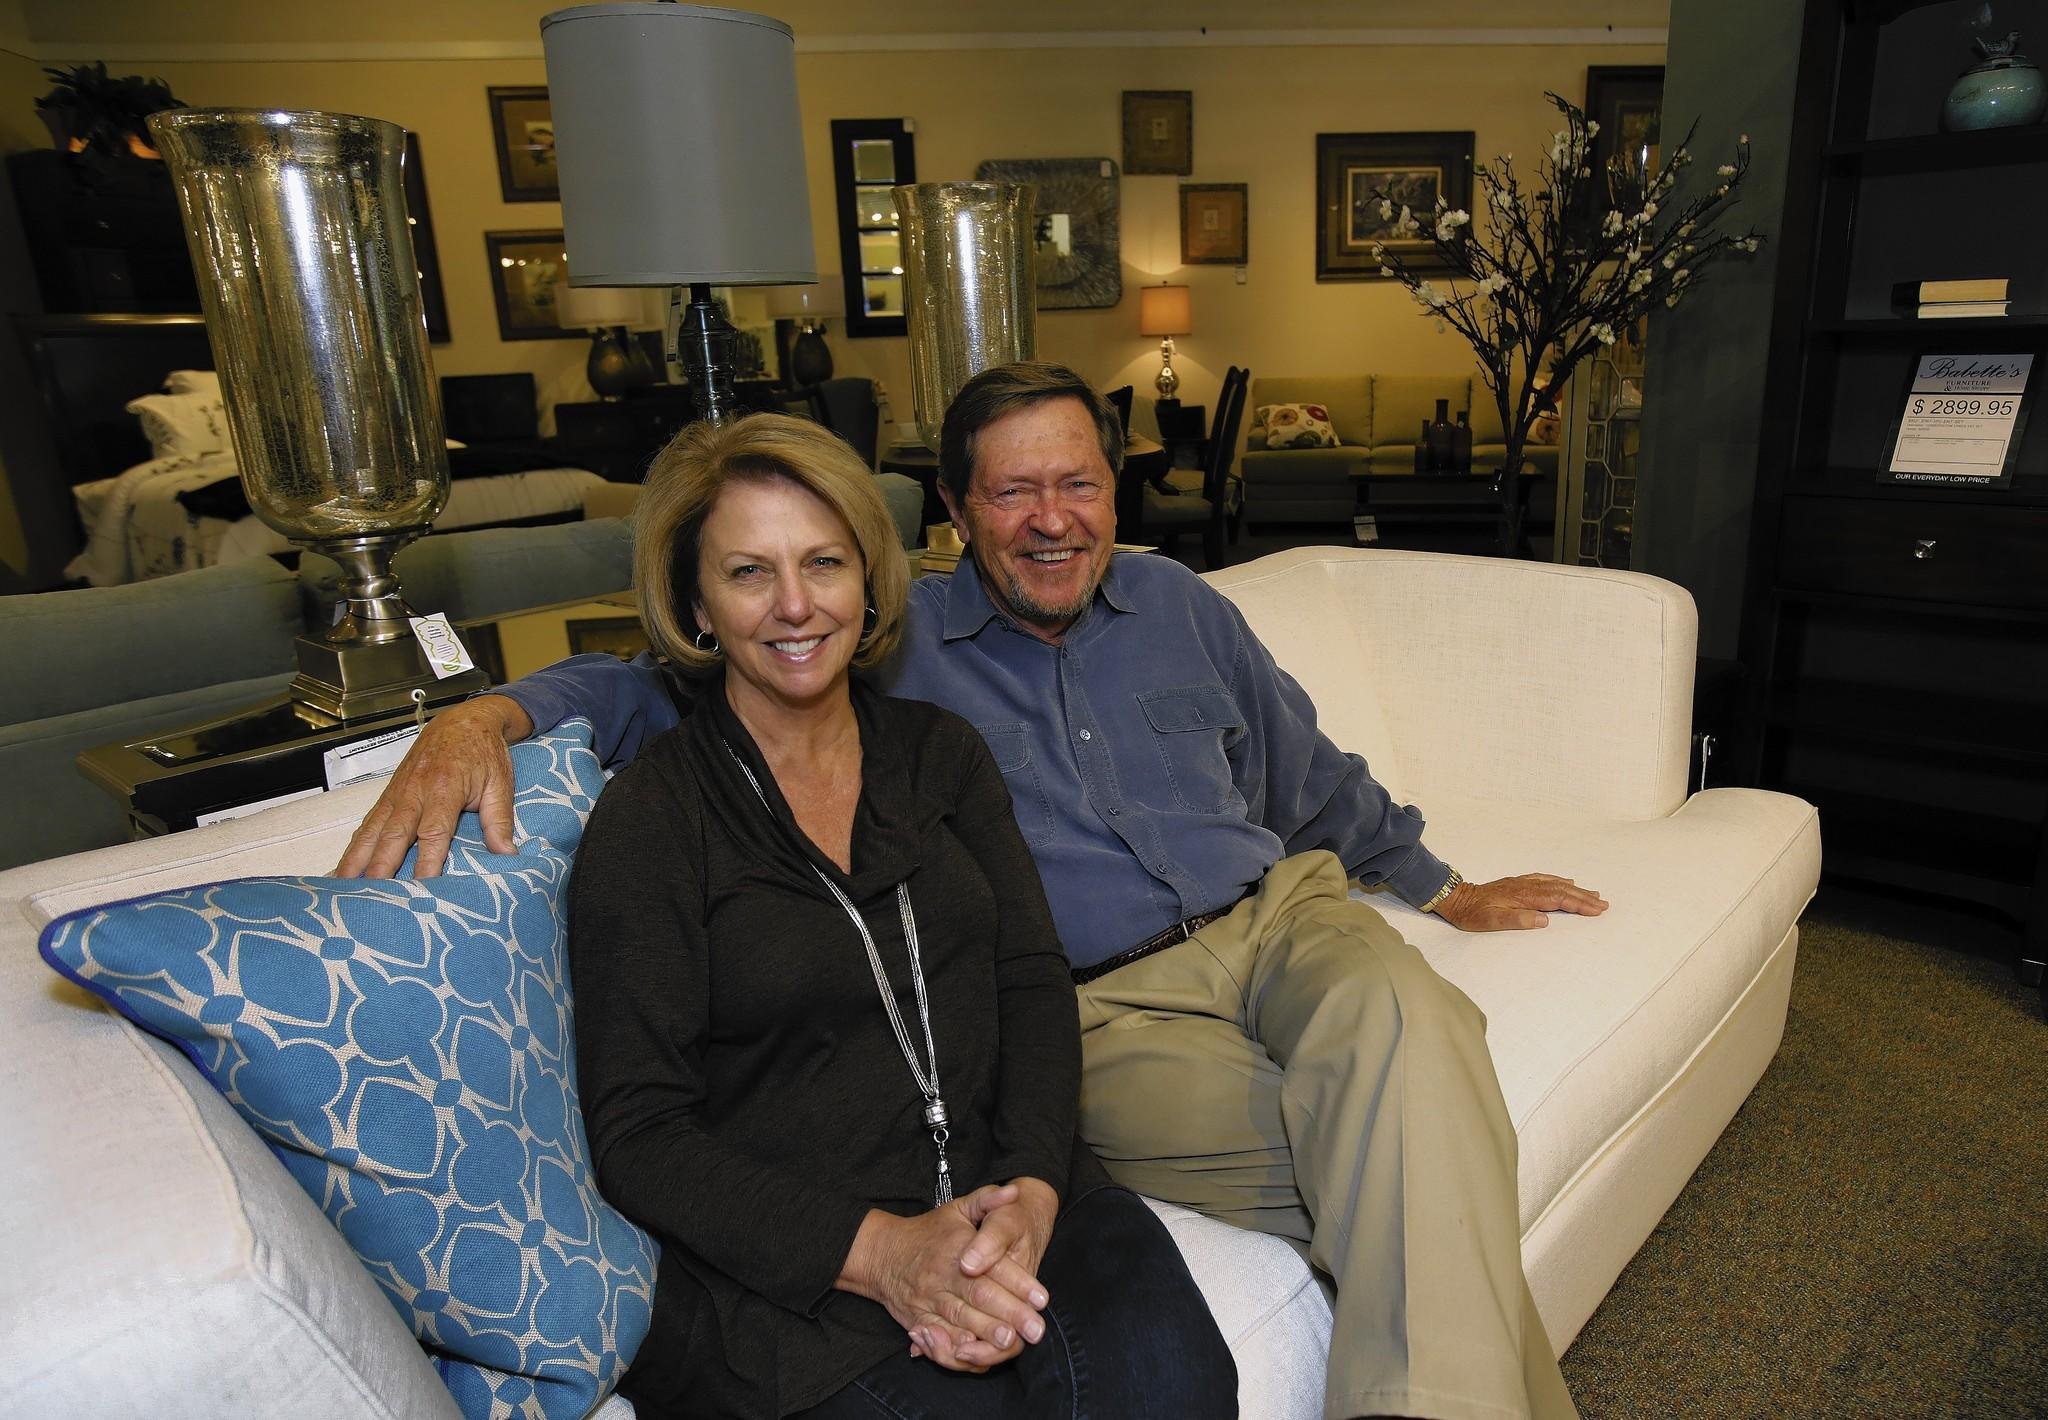 Gary and Babette Ward started their furniture business 25 years ago, back then, they delivered the goods themselves.